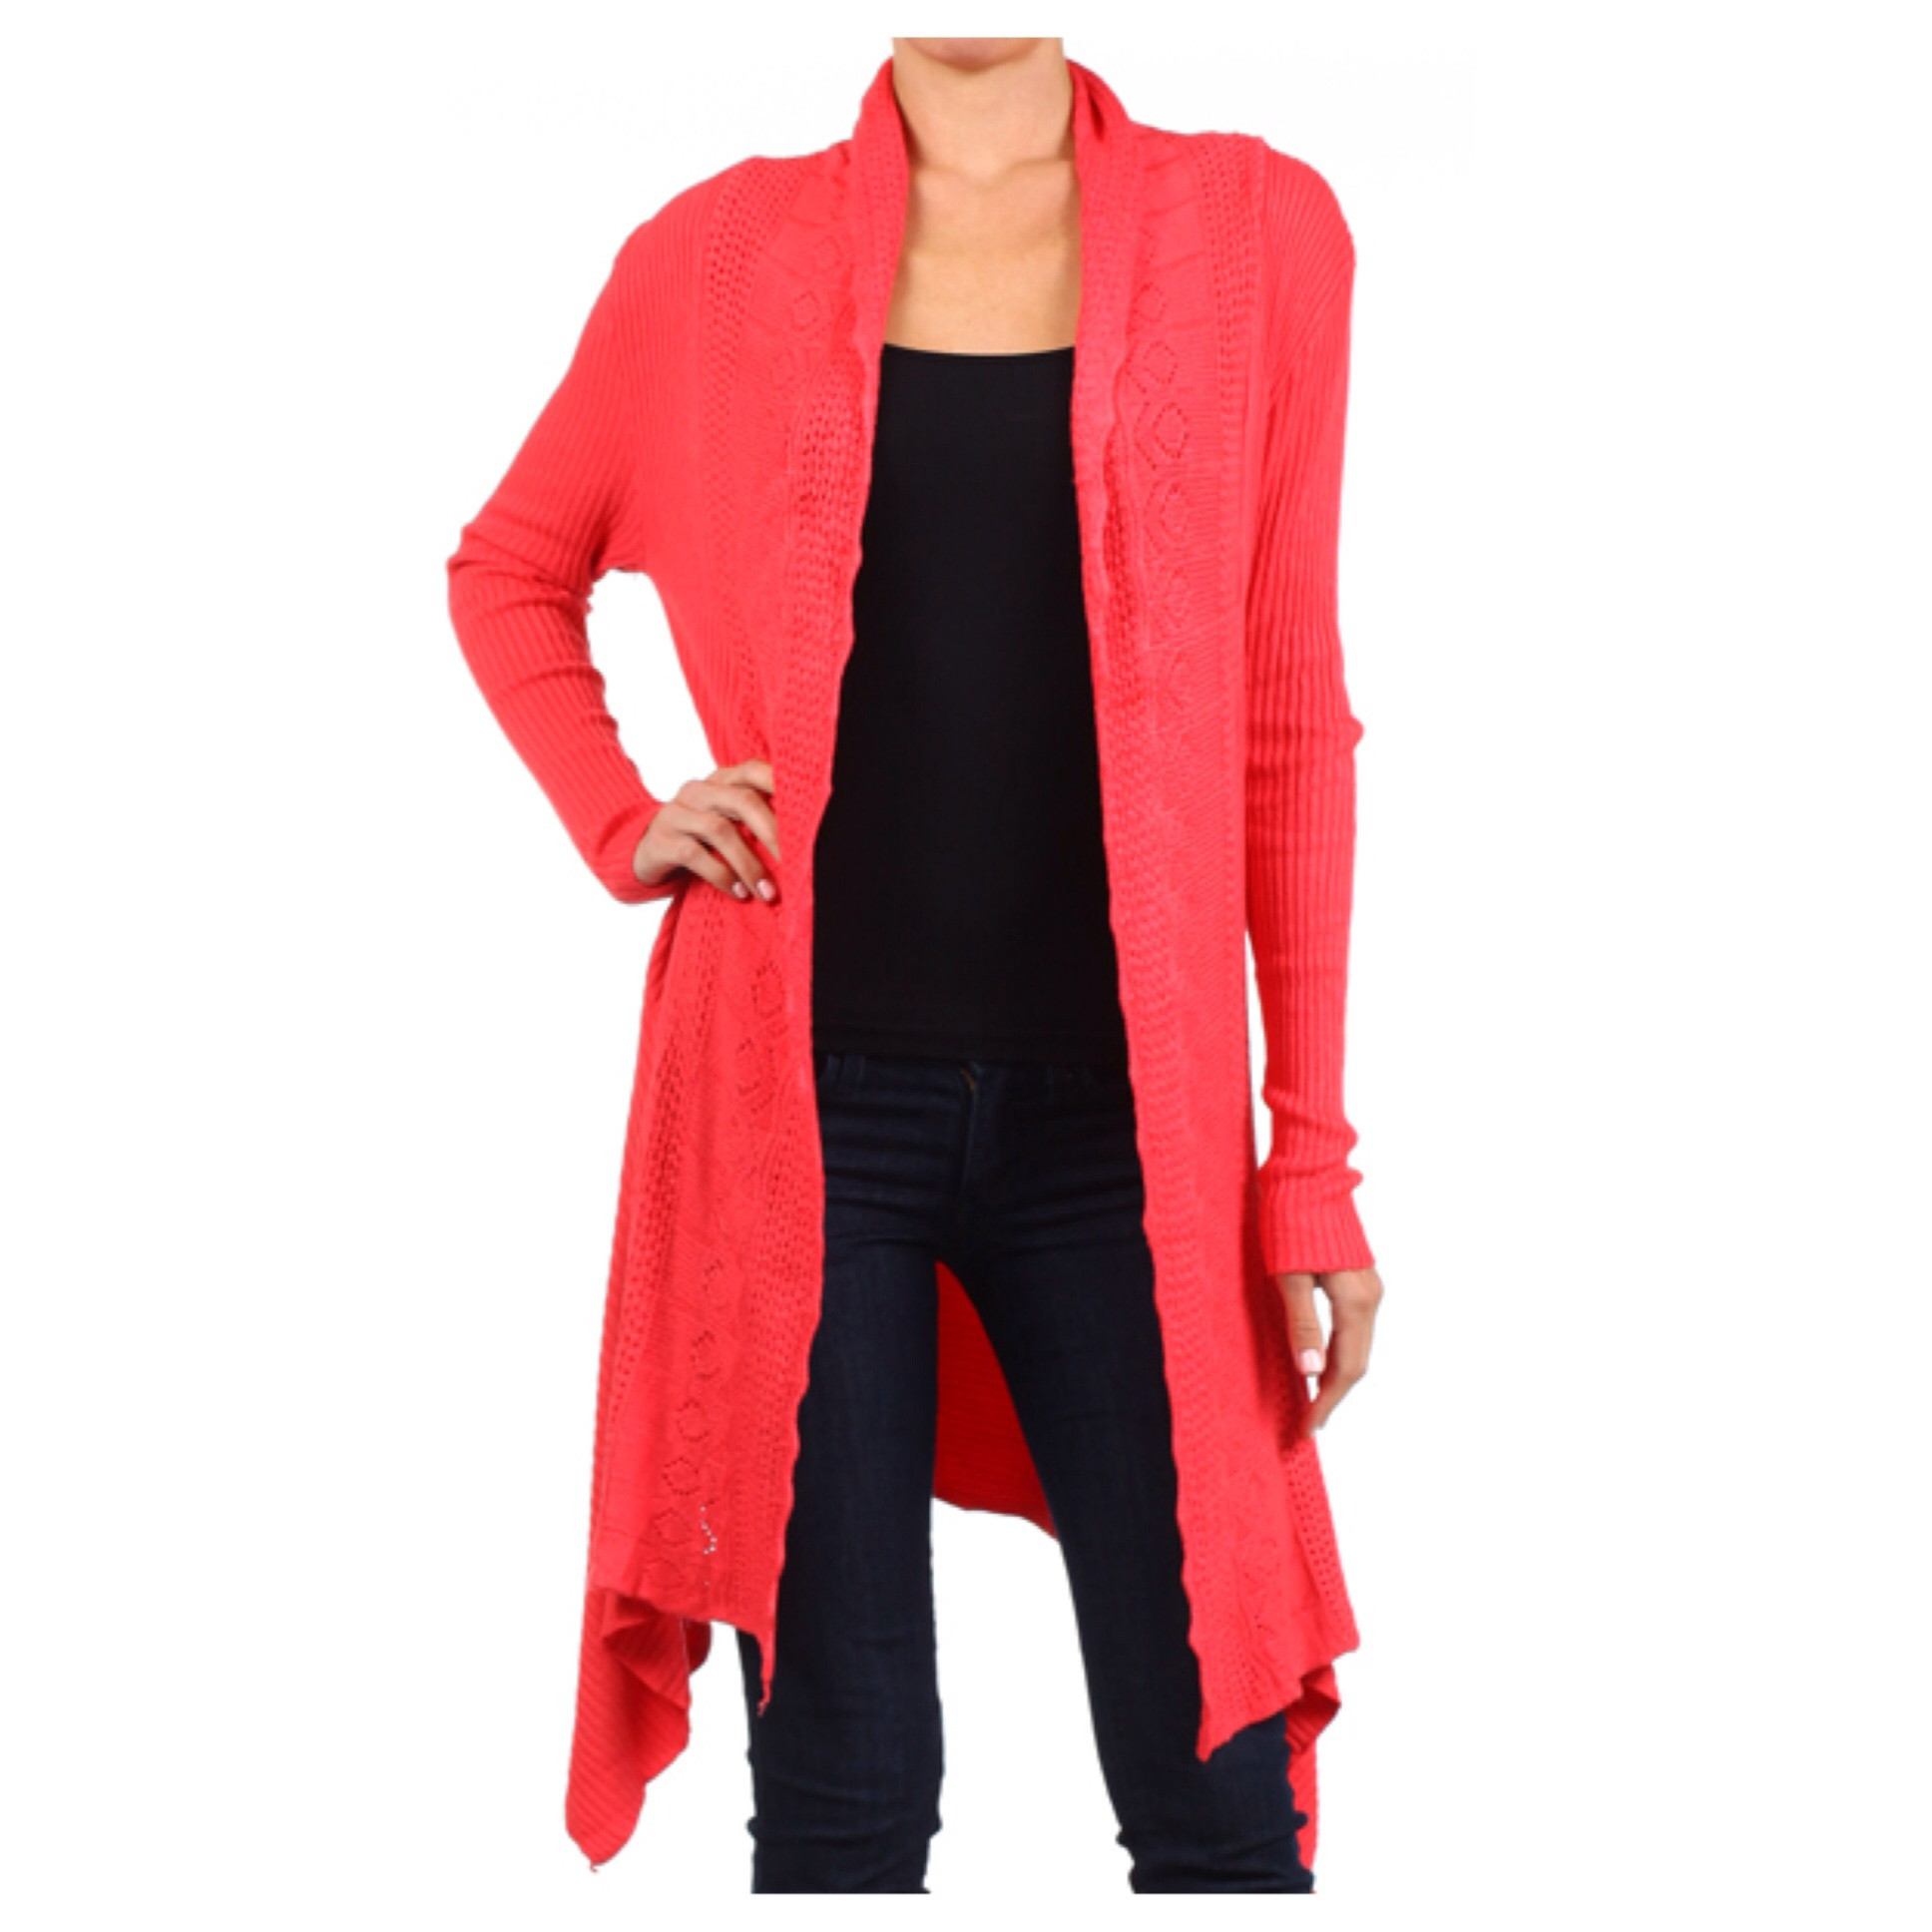 In style crochet knit long coral cardigan